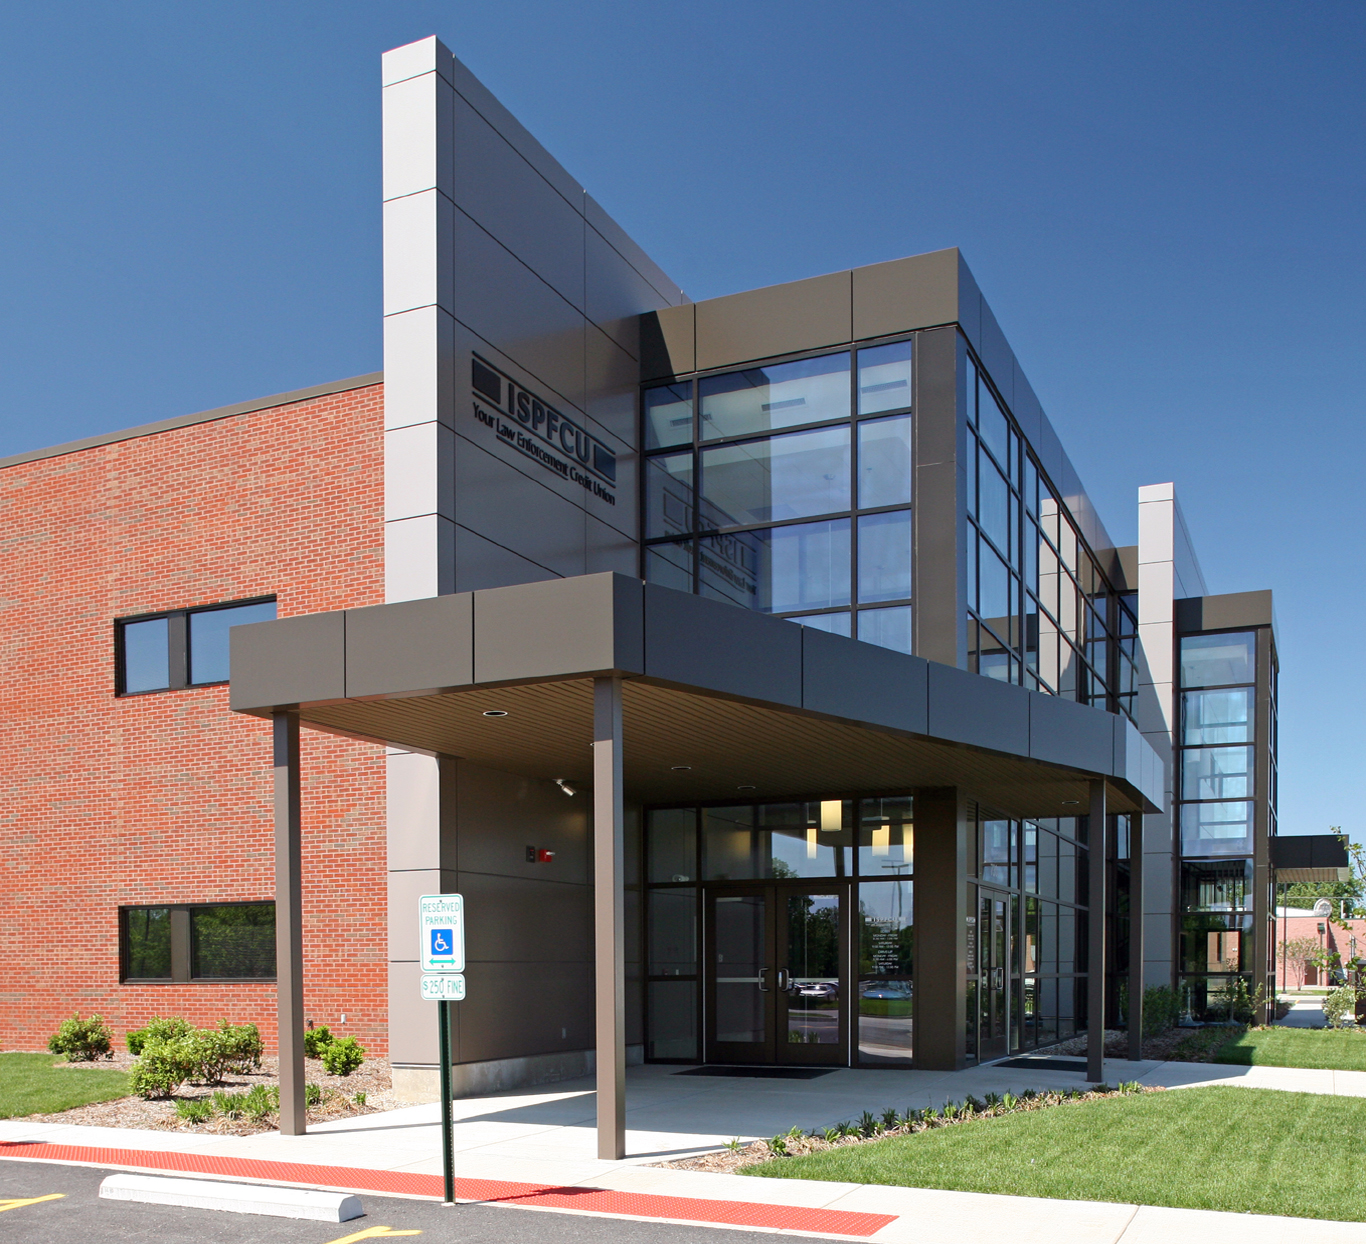 office building design architecture. Evan Lloyd Architects Provided Architectural Services For Illinois State Police Federal Credit Union (ISPFCU) Office Building Design Architecture R